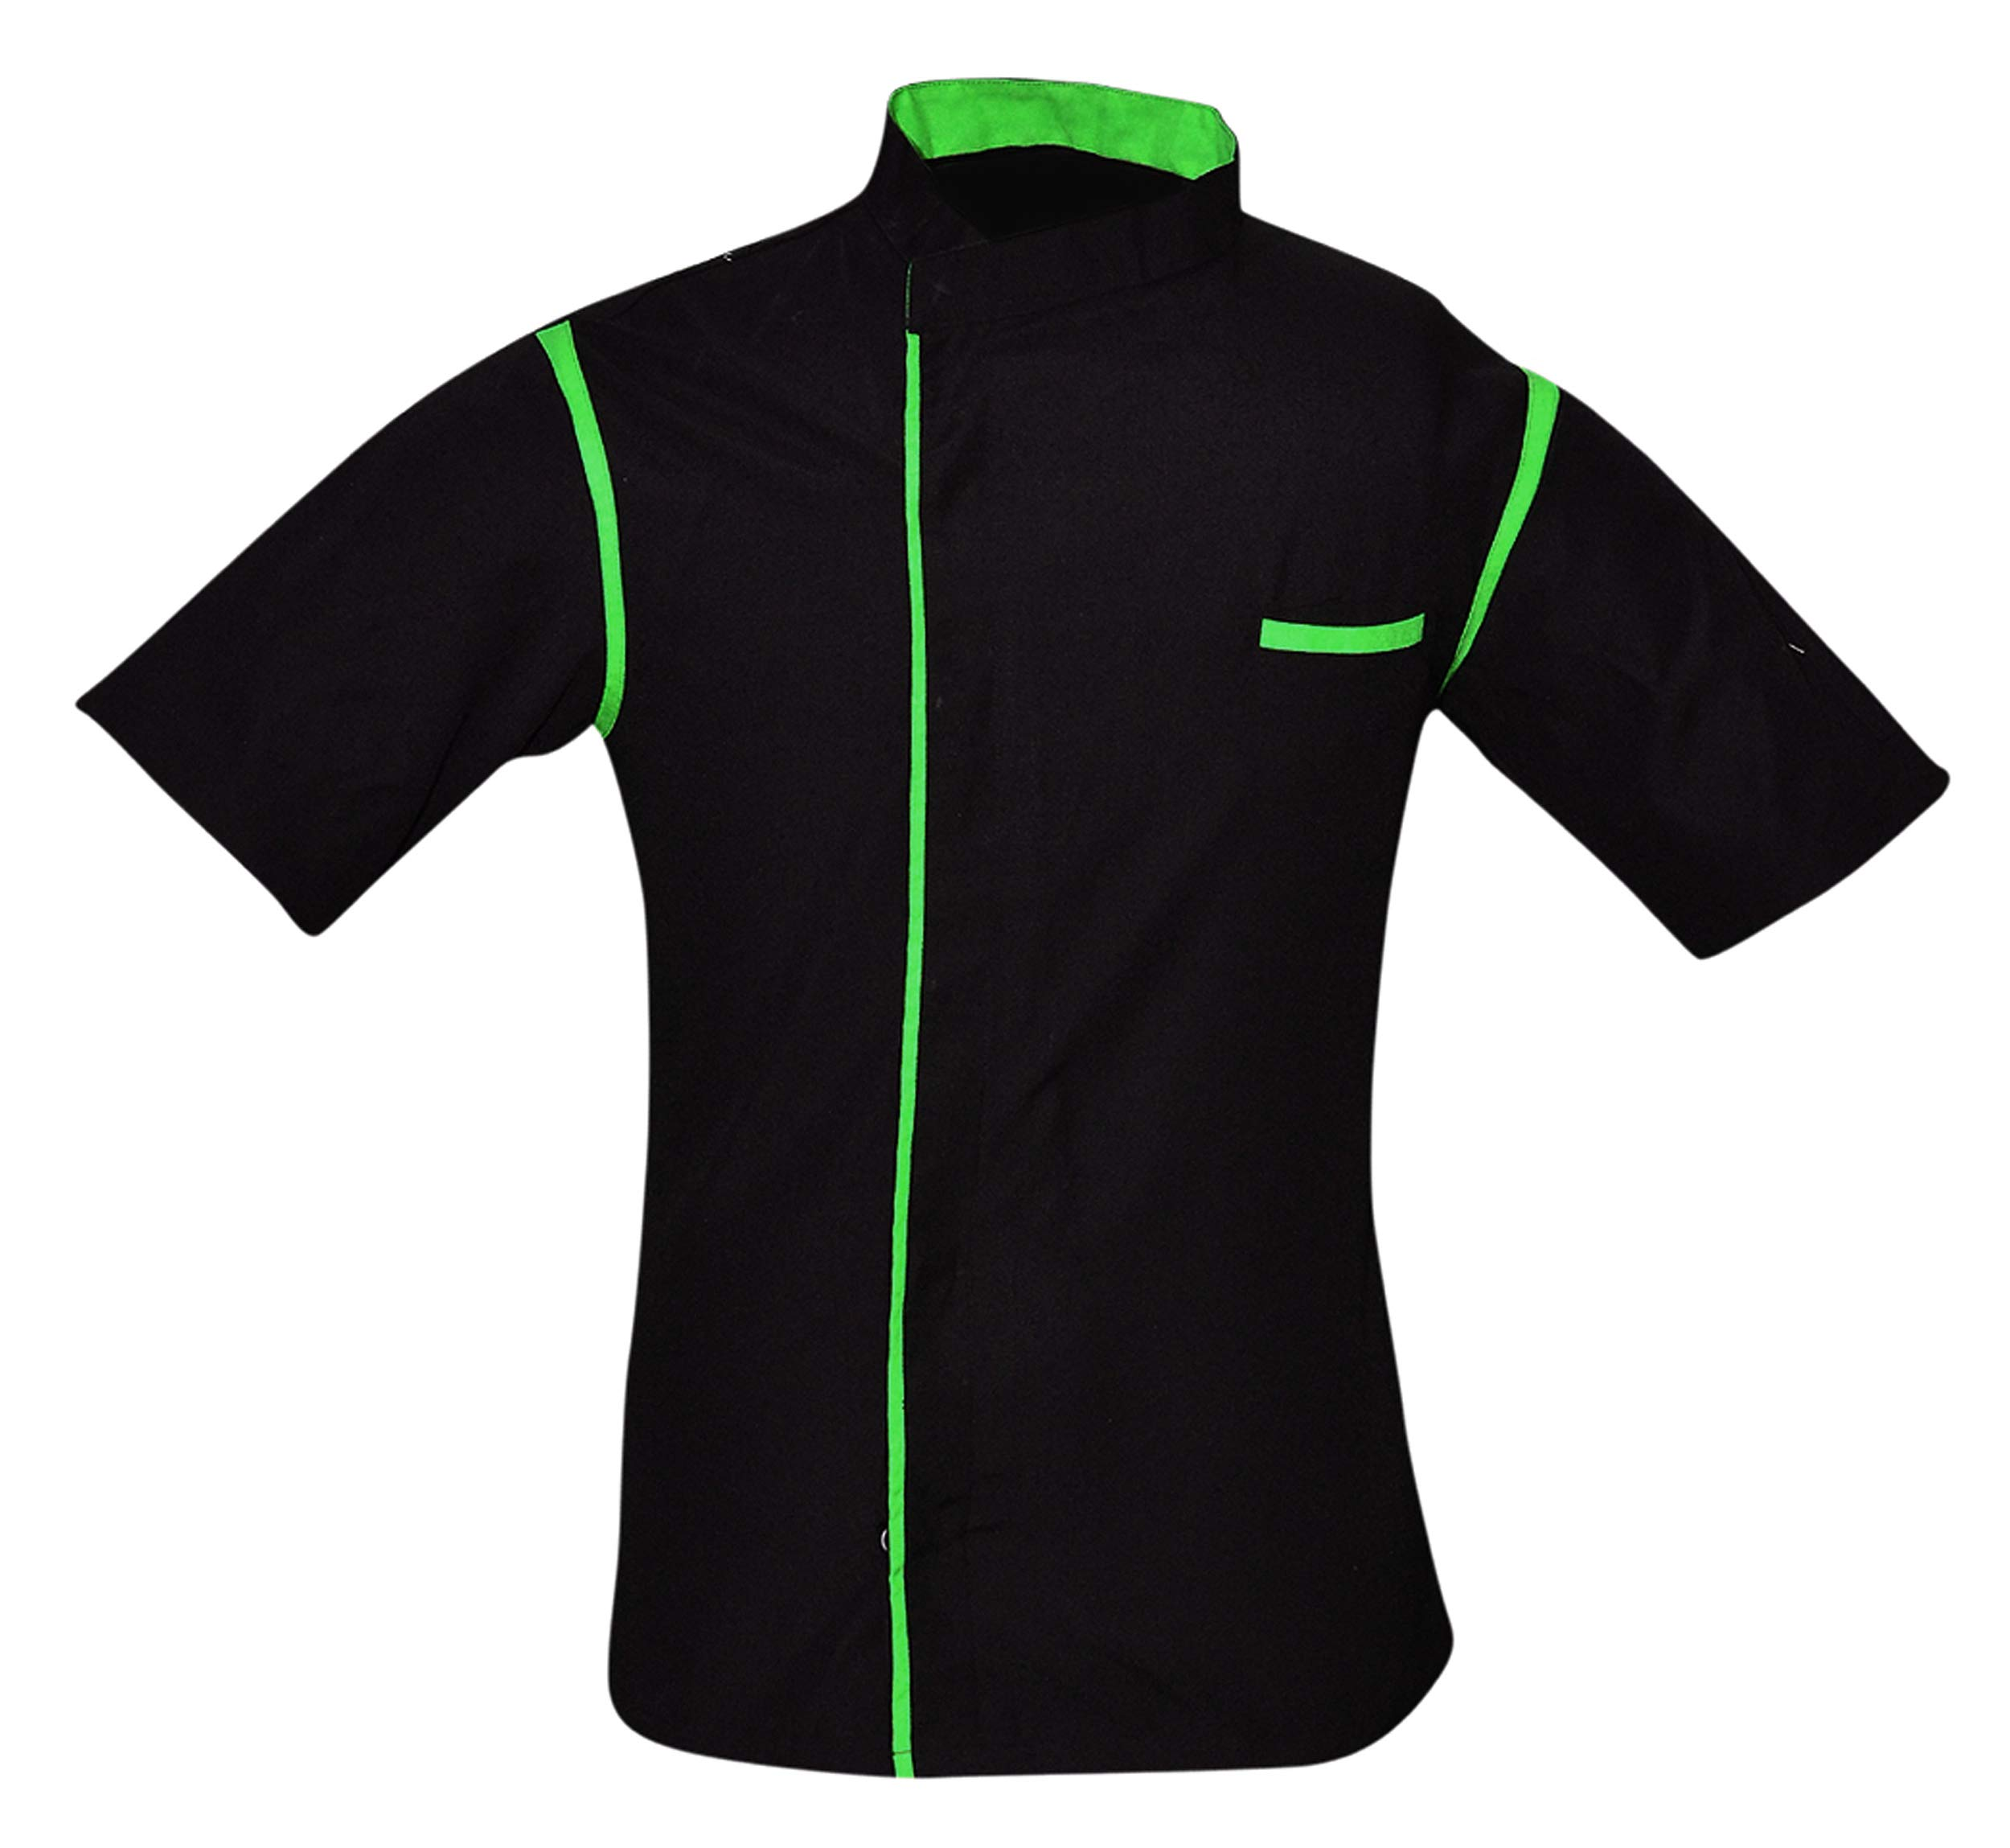 Leorenzo Creation HN-06 Men's Chef Coat with Green Piping (Size- XXXXL, Black Colour)